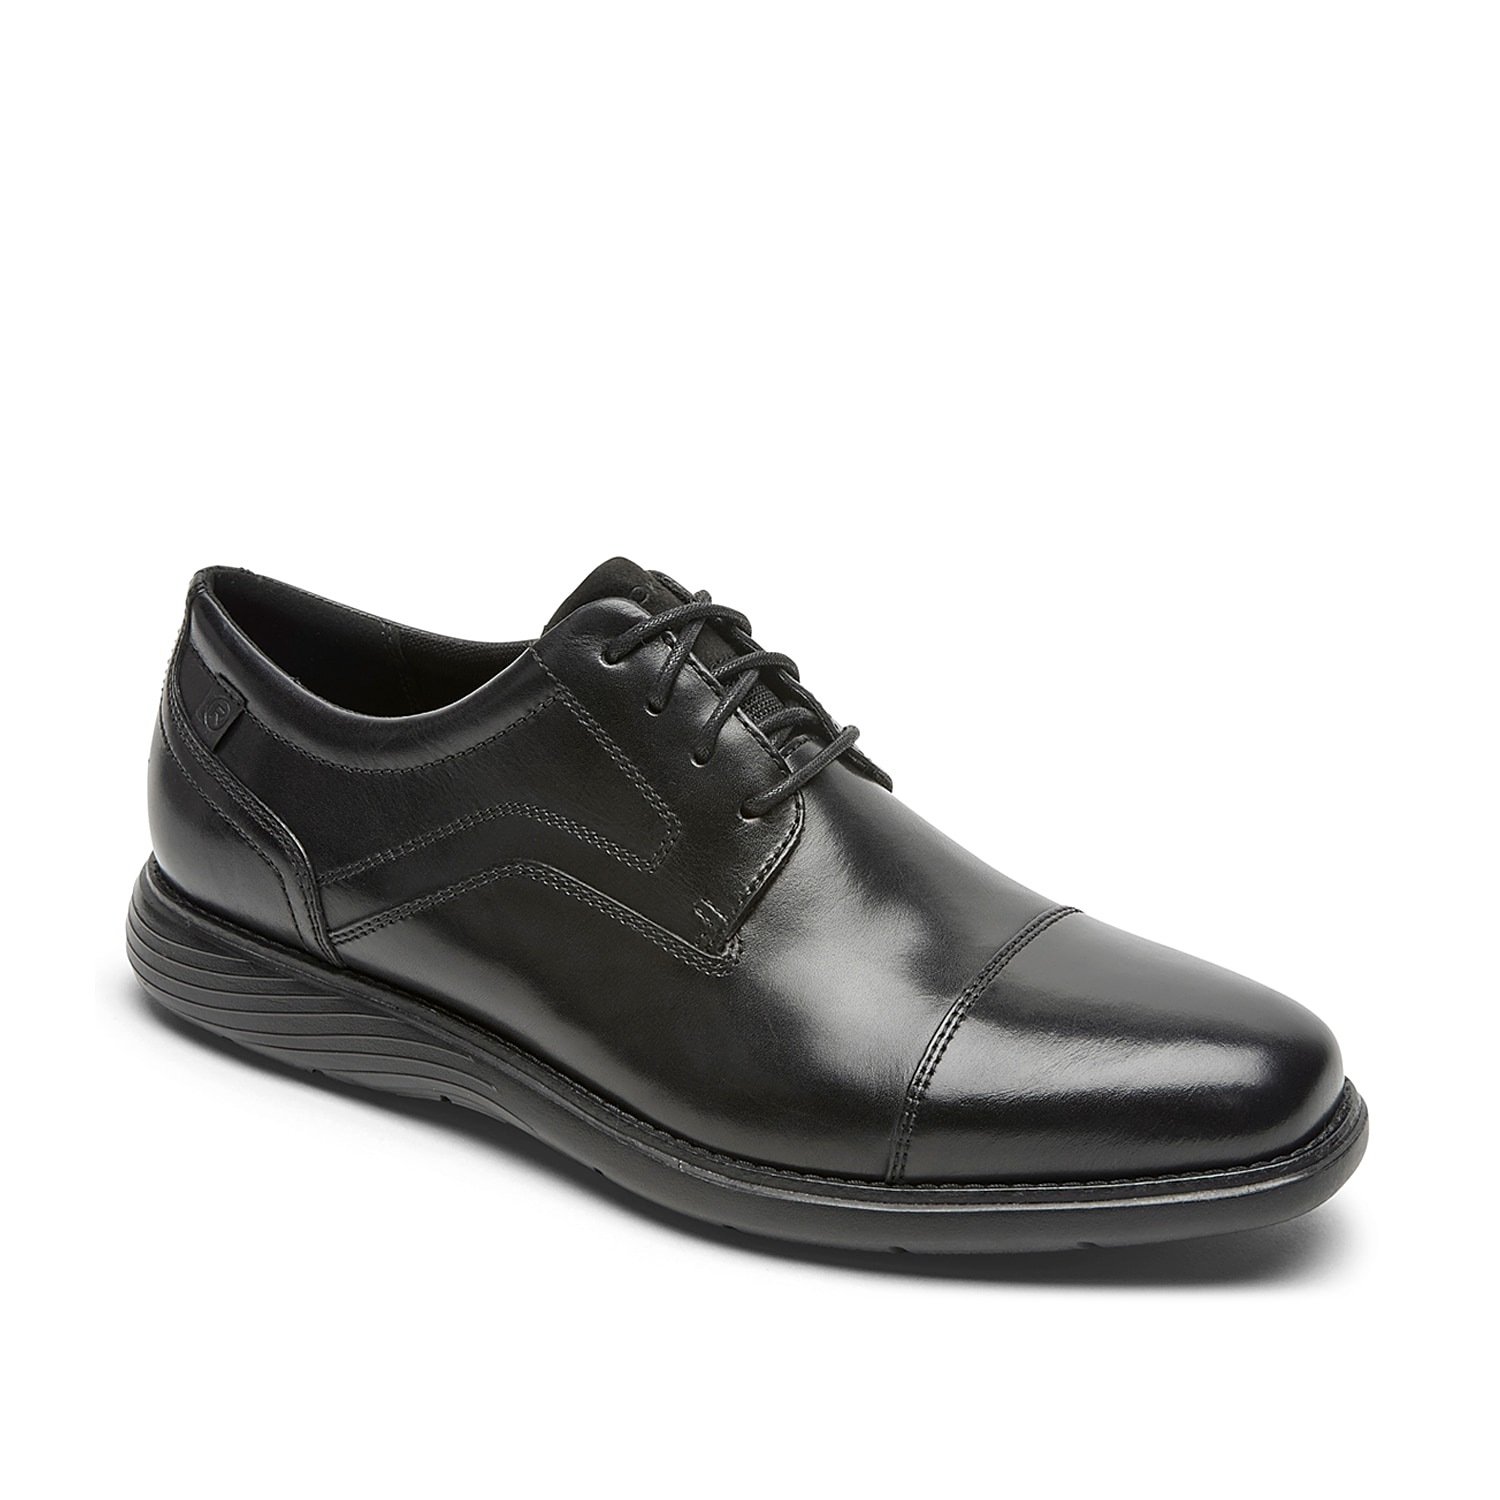 Bring a versatile look to your outfit with the Garrett oxford from Rockport. This lace-up pair features a round cap toe and a TruTECH®footbed for comfortable steps!